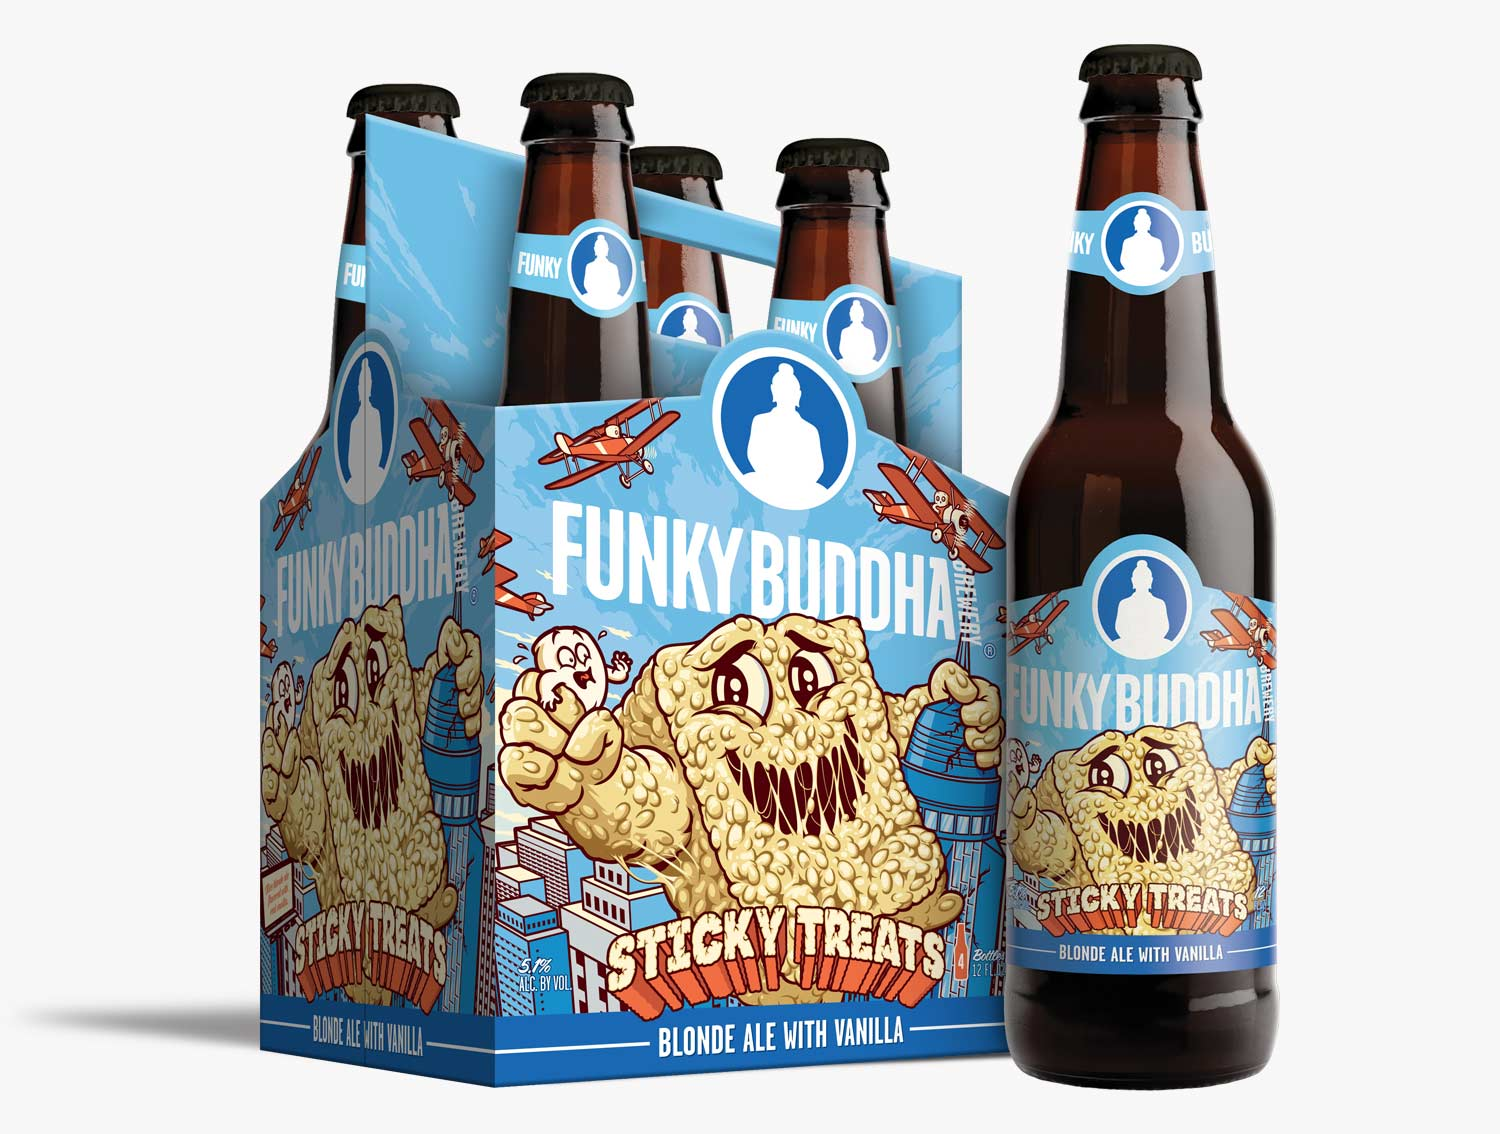 Funky Buddha Brewery Sticky Treats Artwork Illustration and Design